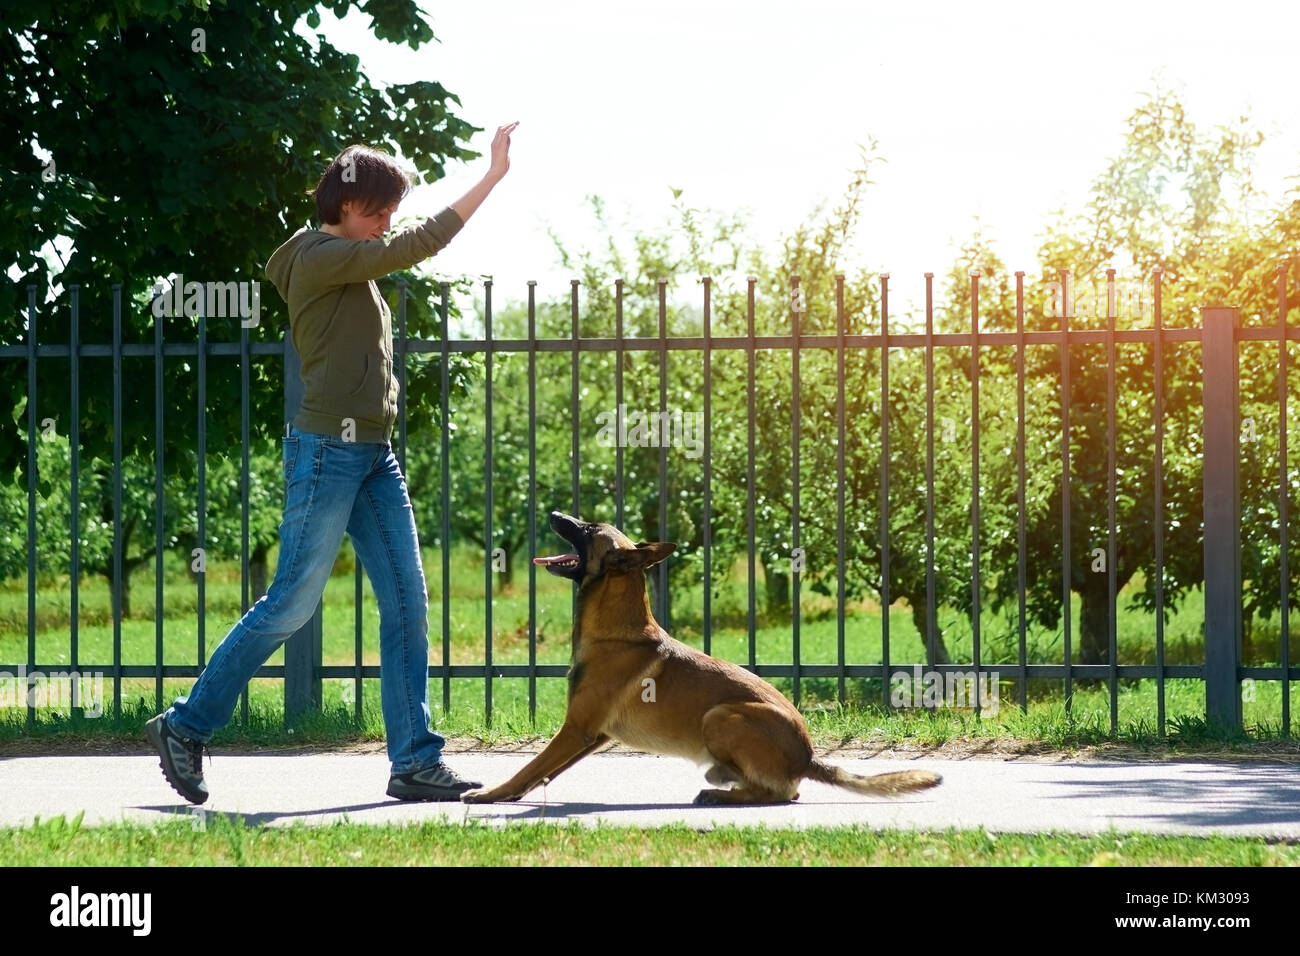 The woman is raising her right hand up to make her dog jump. - Stock Image